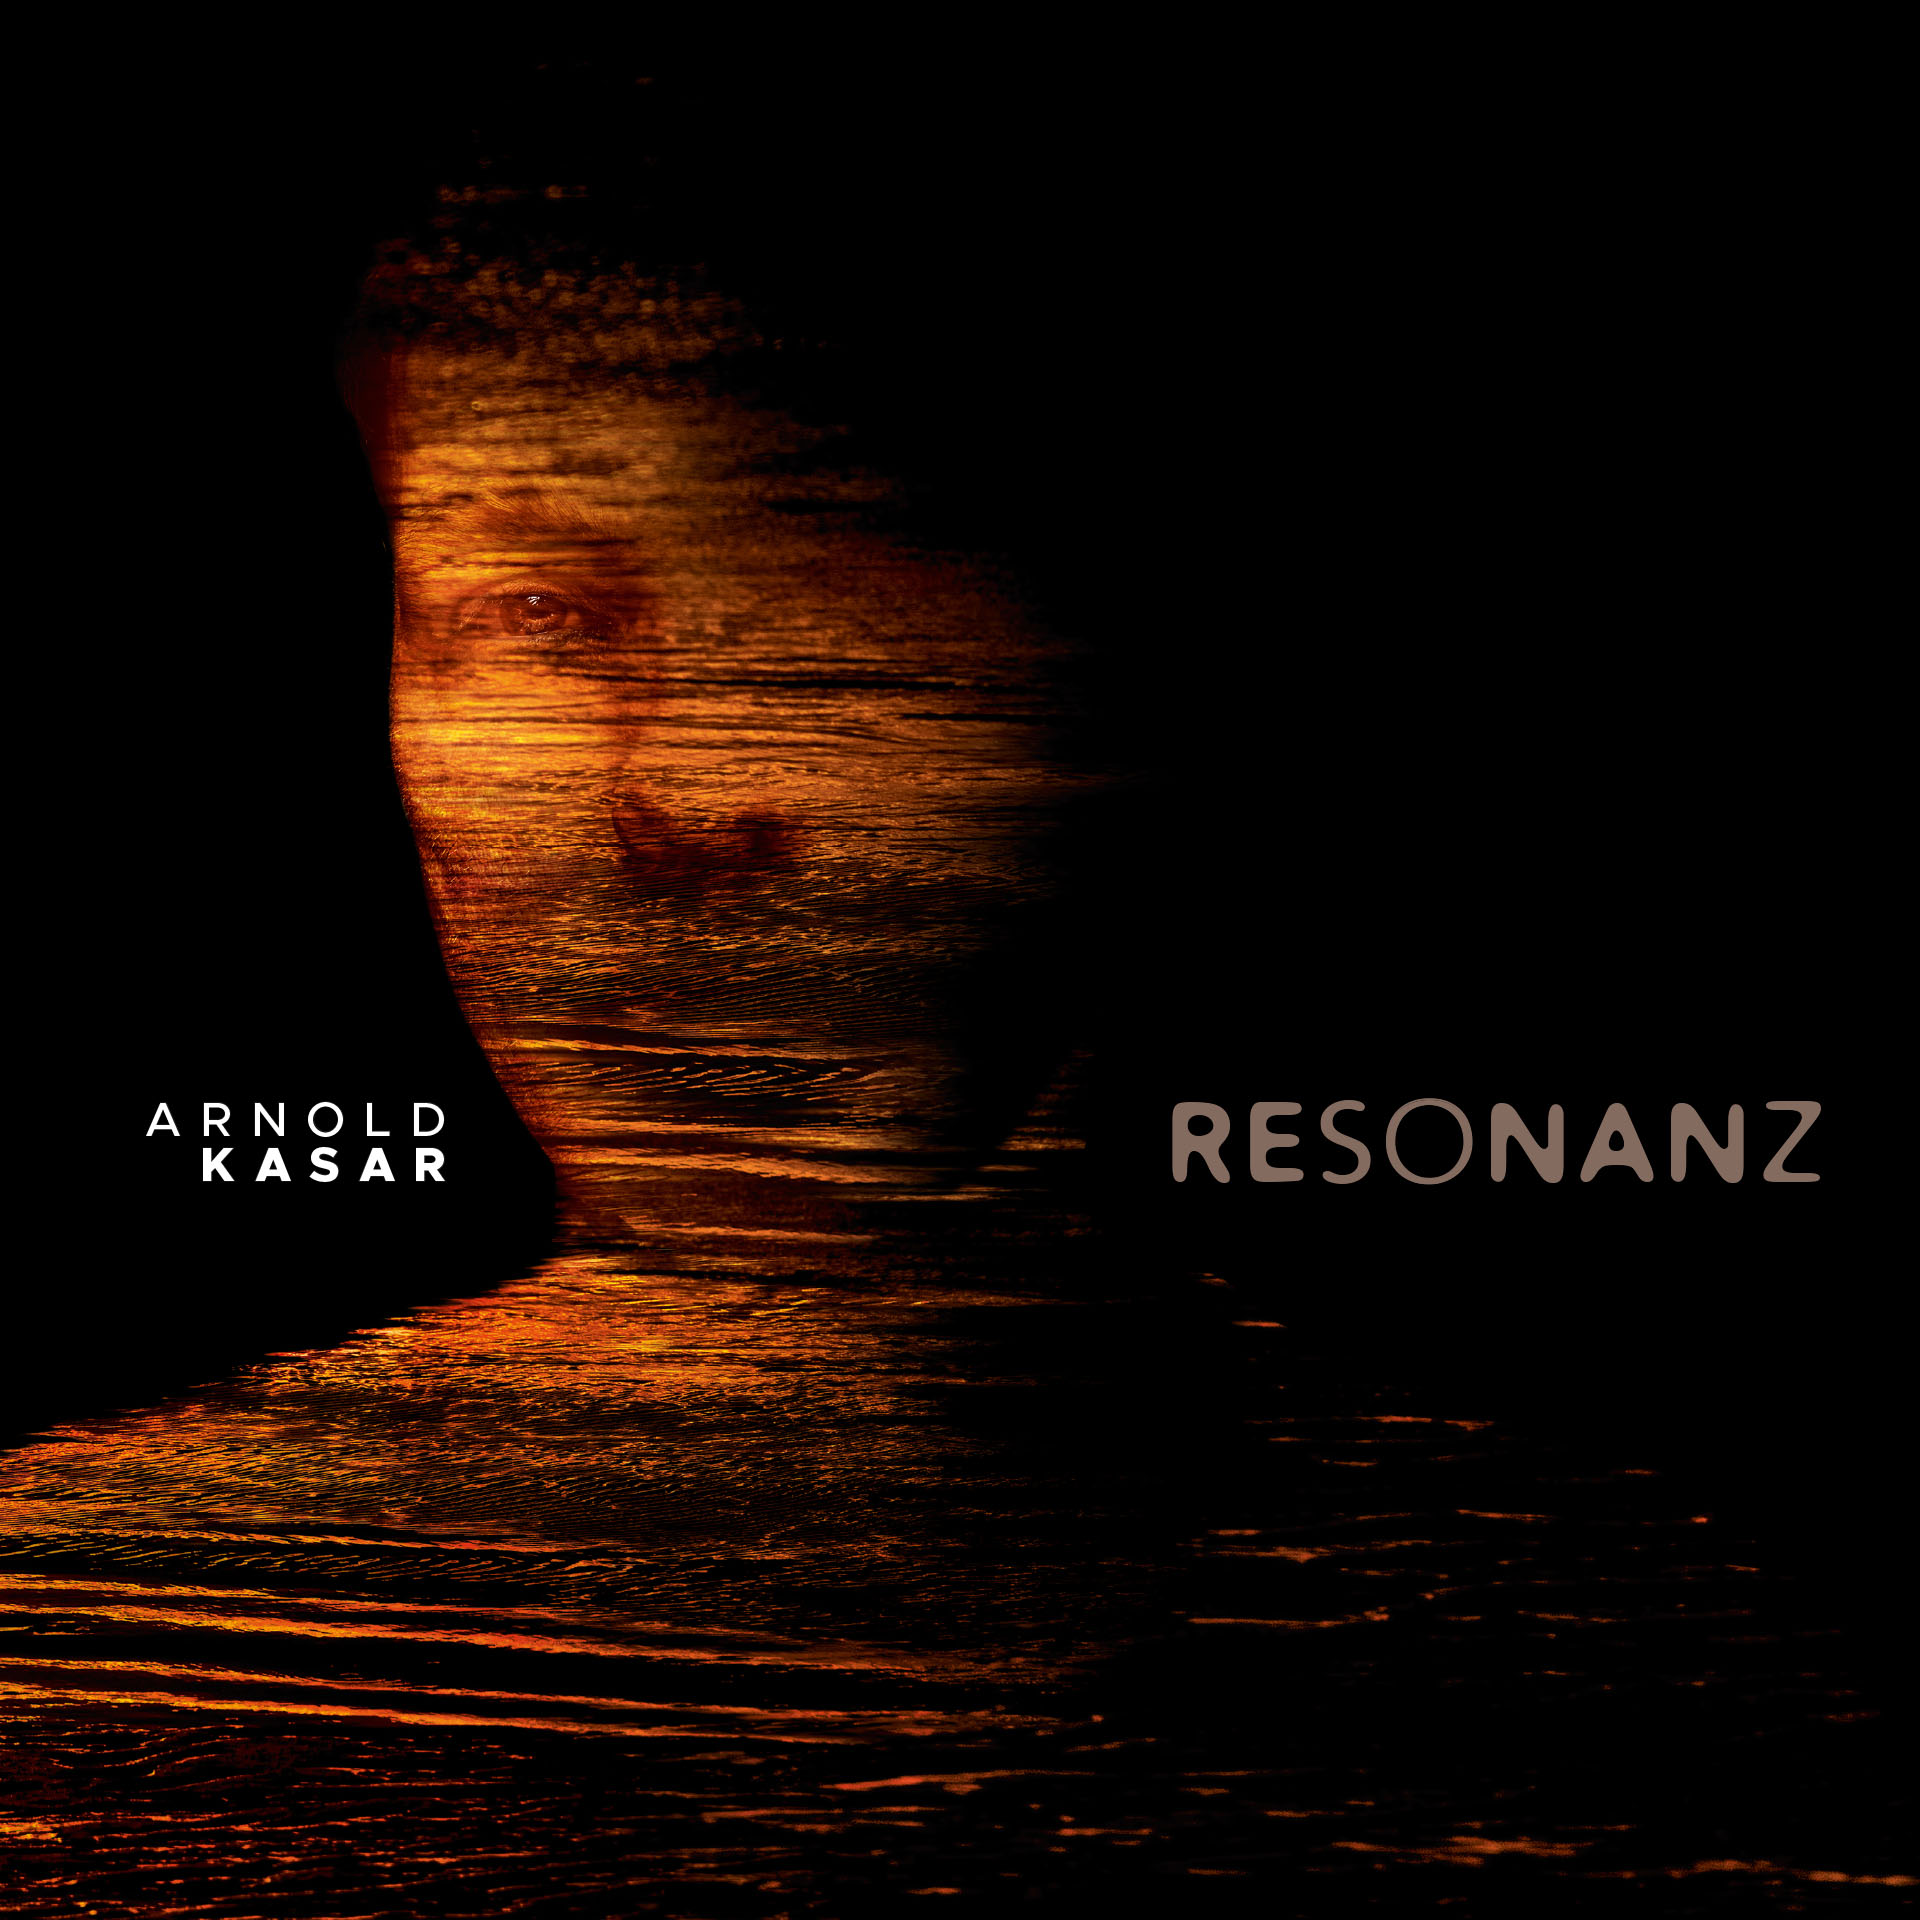 ArnoldKasar-Resonanz-Booklet1.jpg